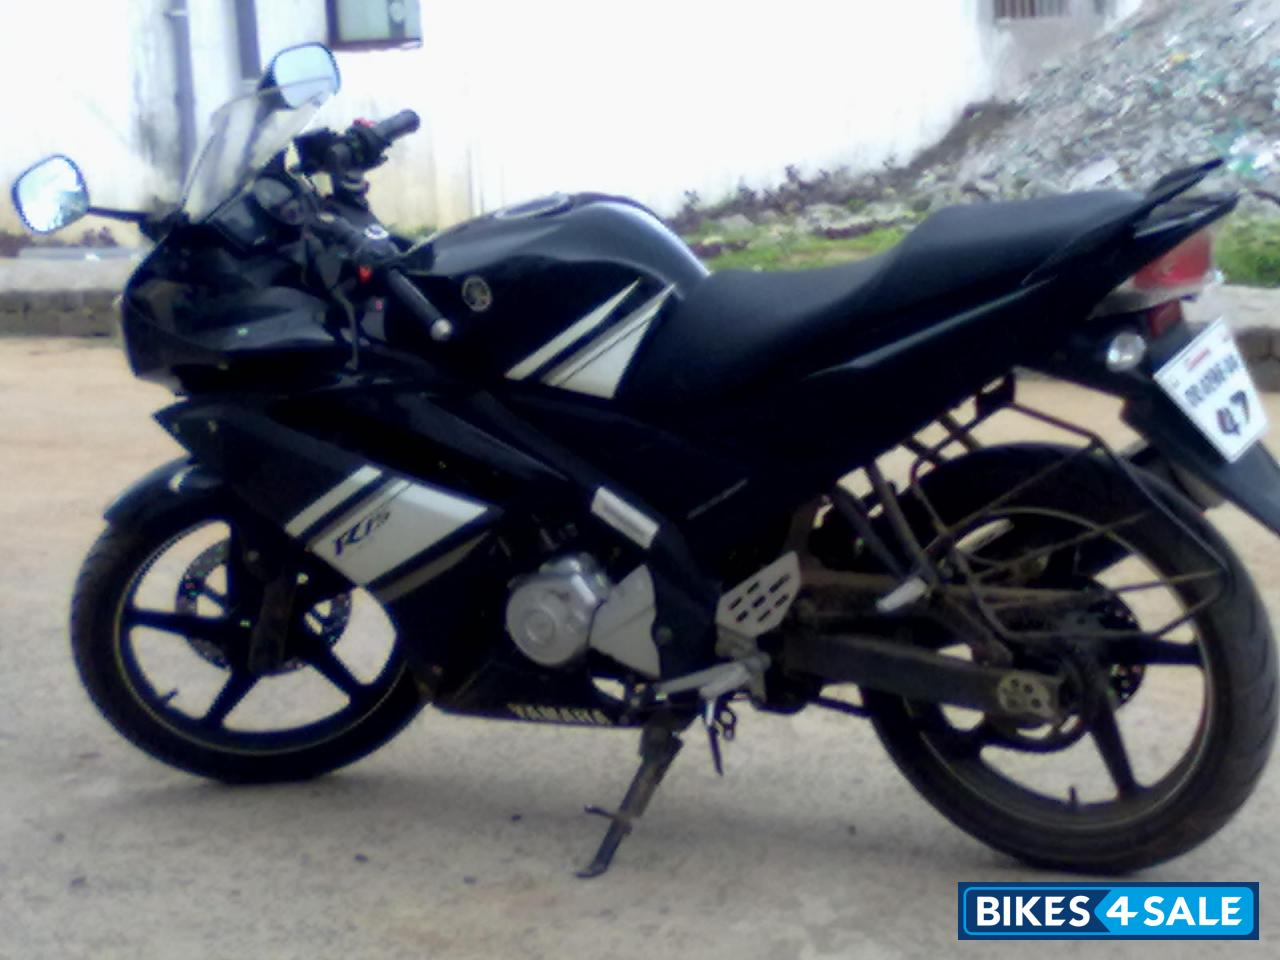 Black Yamaha Yzf R15 Picture 1 Album Id Is 85838 Bike